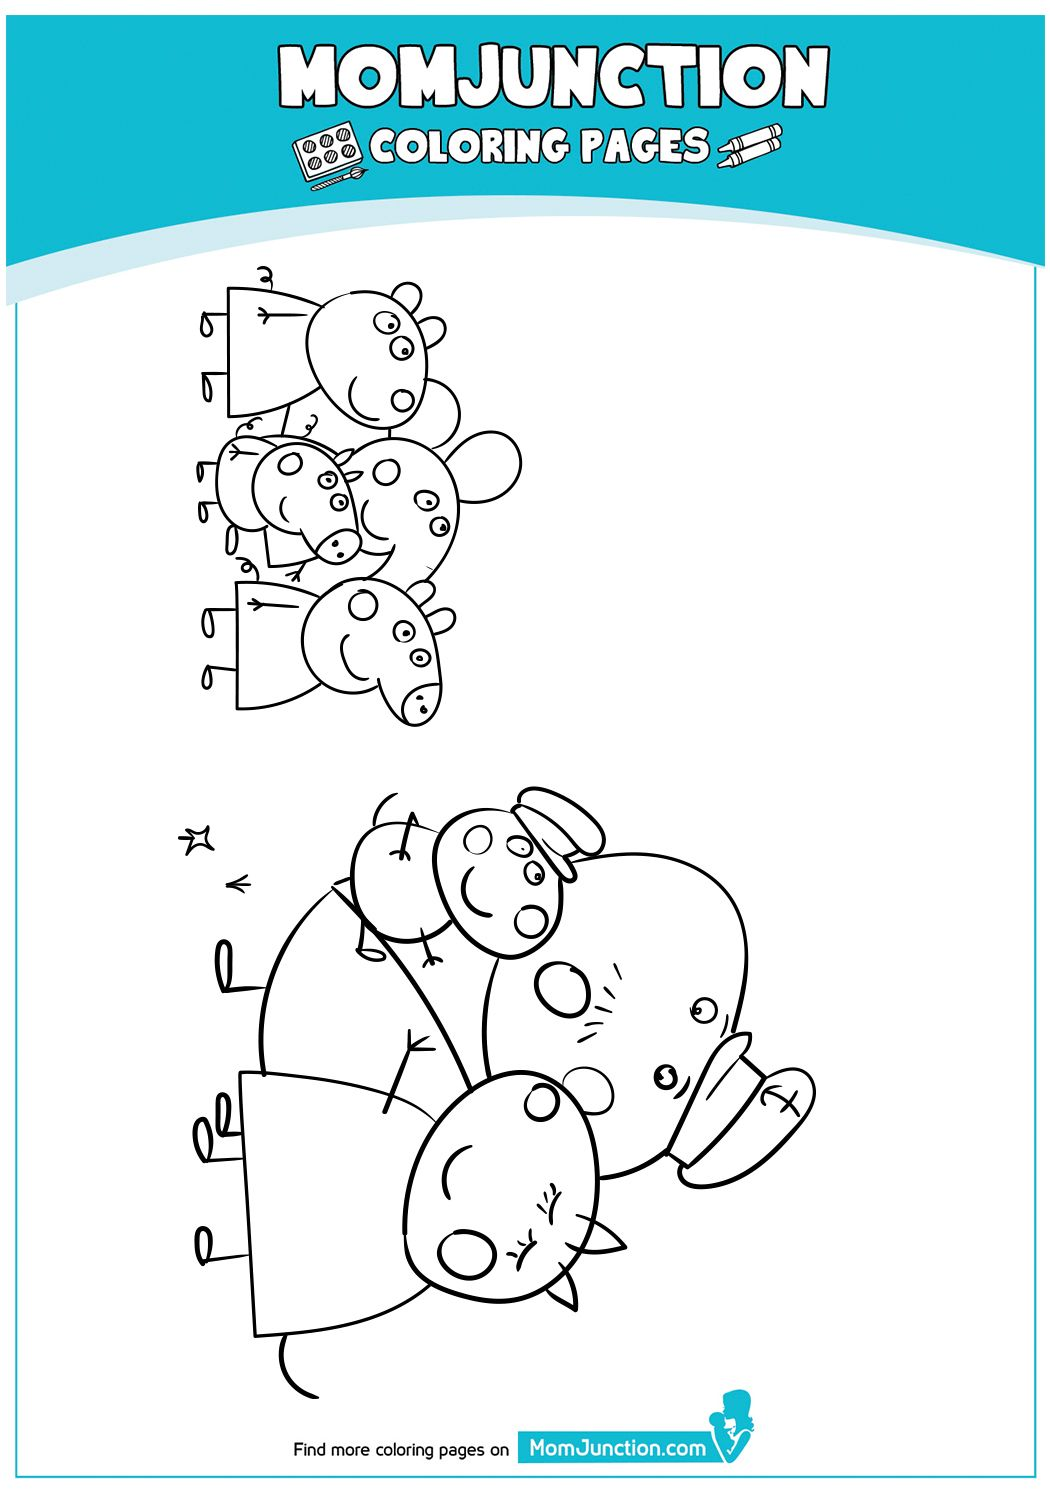 The Peppa Pig Coloring Page